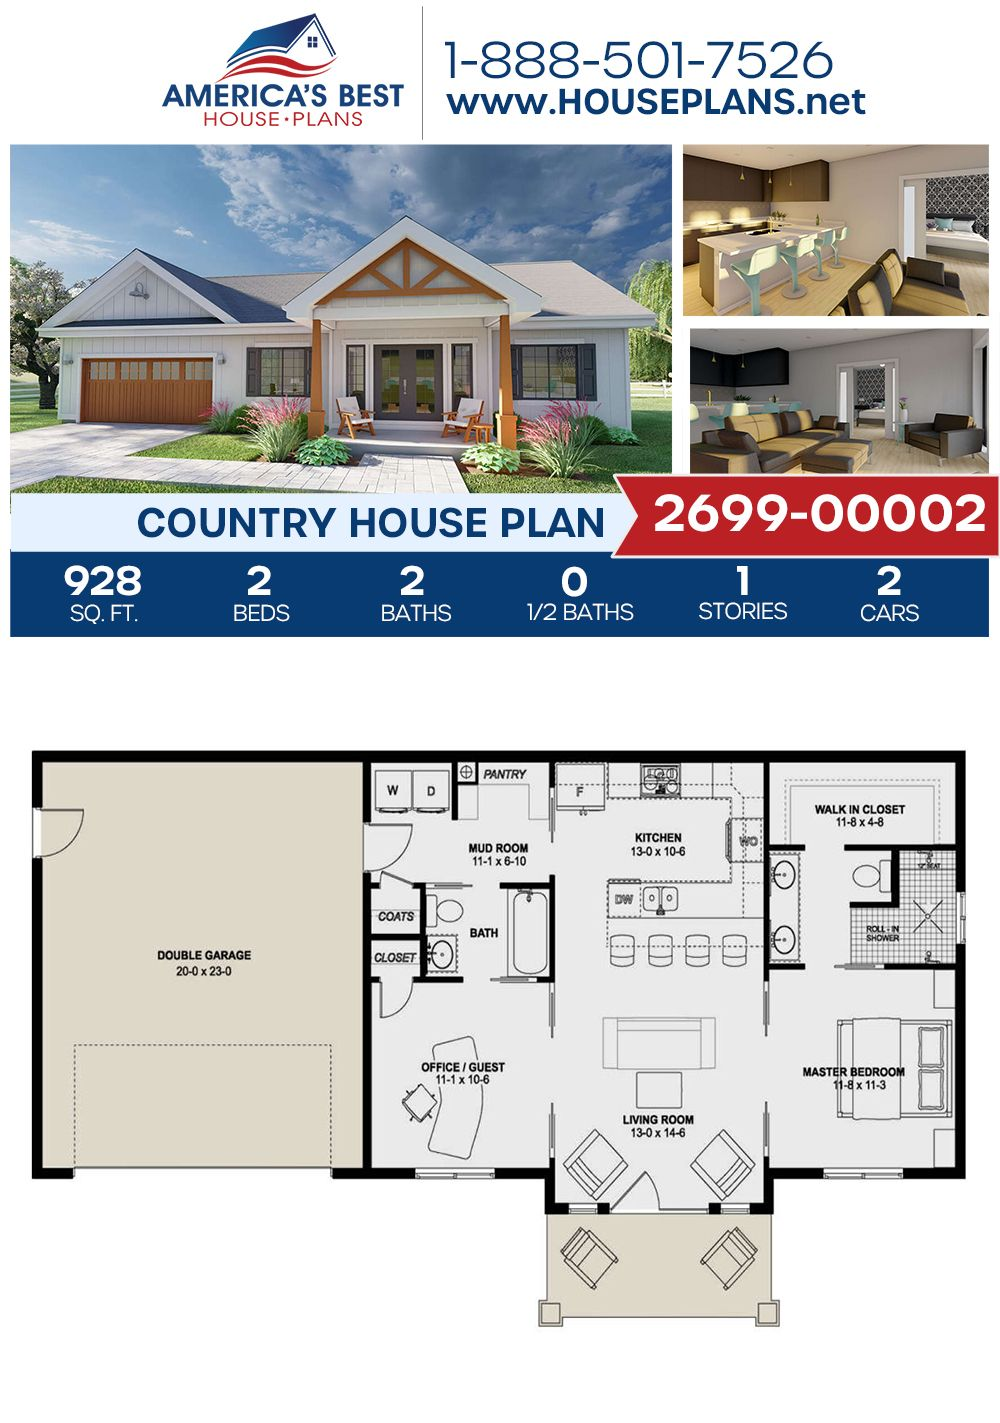 House Plan 2699 00002 Country Plan 928 Square Feet 2 Bedrooms 2 Bathrooms Small House Plans House Plans Small House Floor Plans